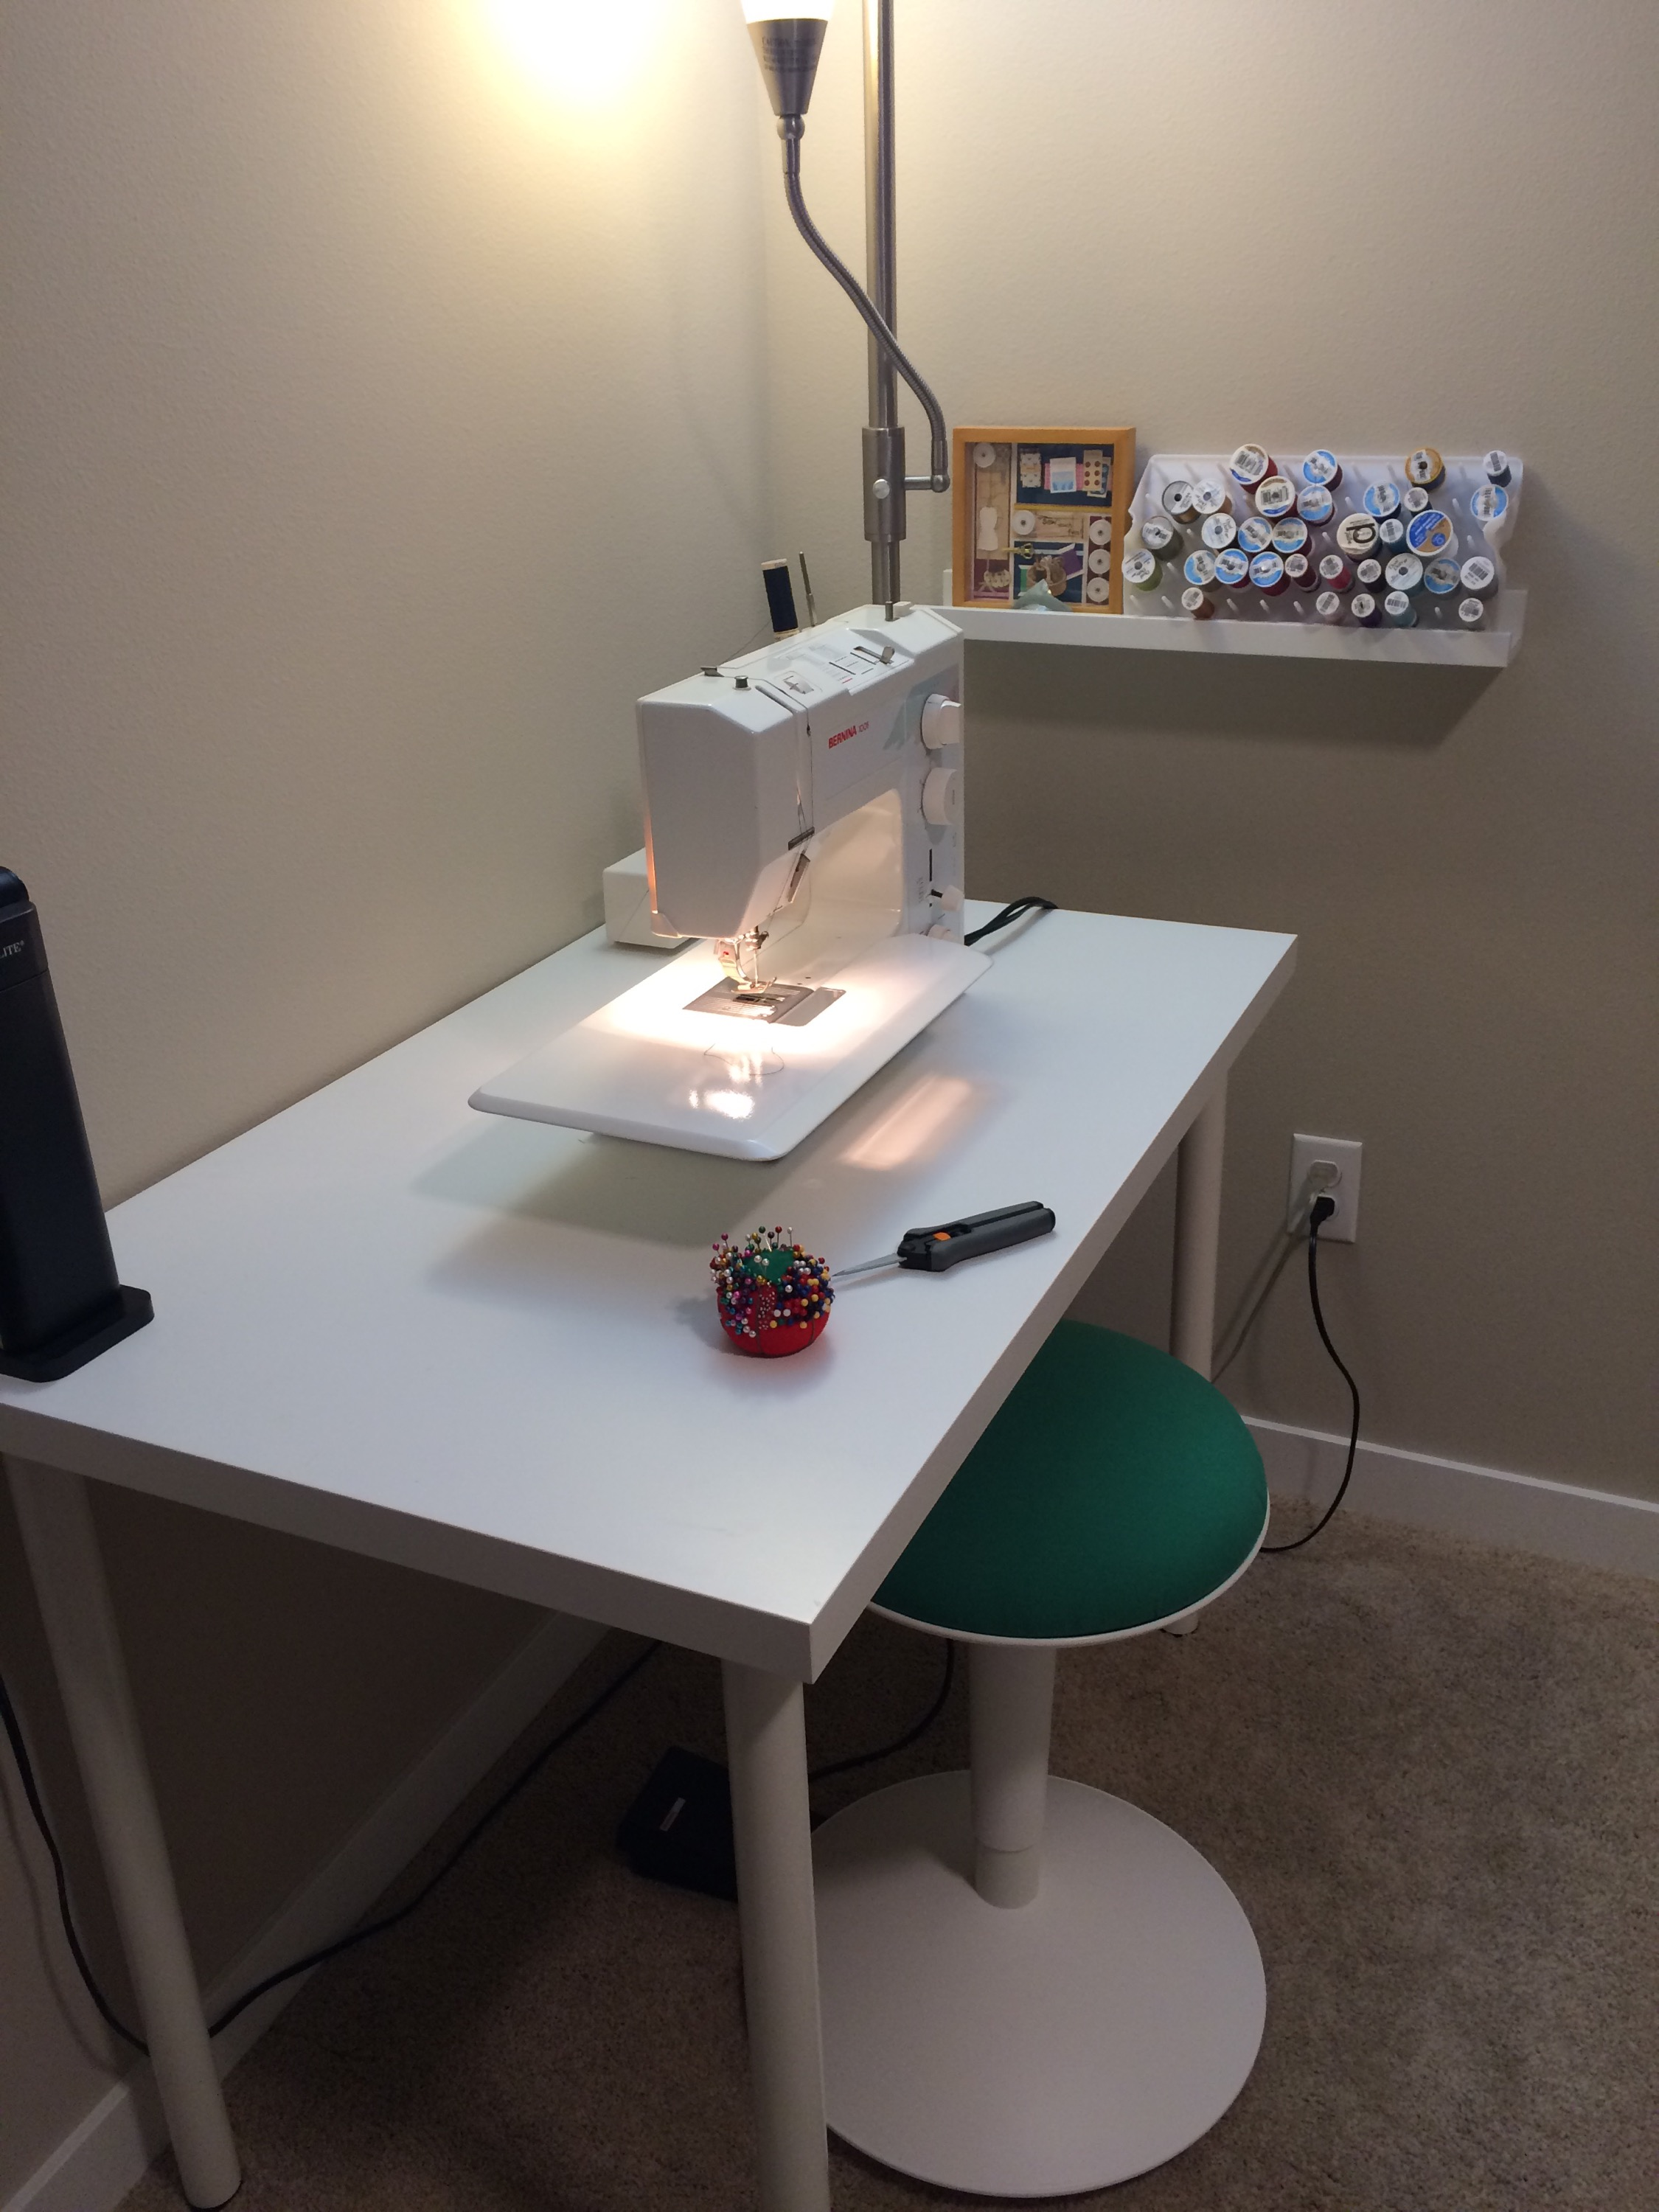 Sewing Room 2 0 – Sewing Station – The Fabric Alchemist